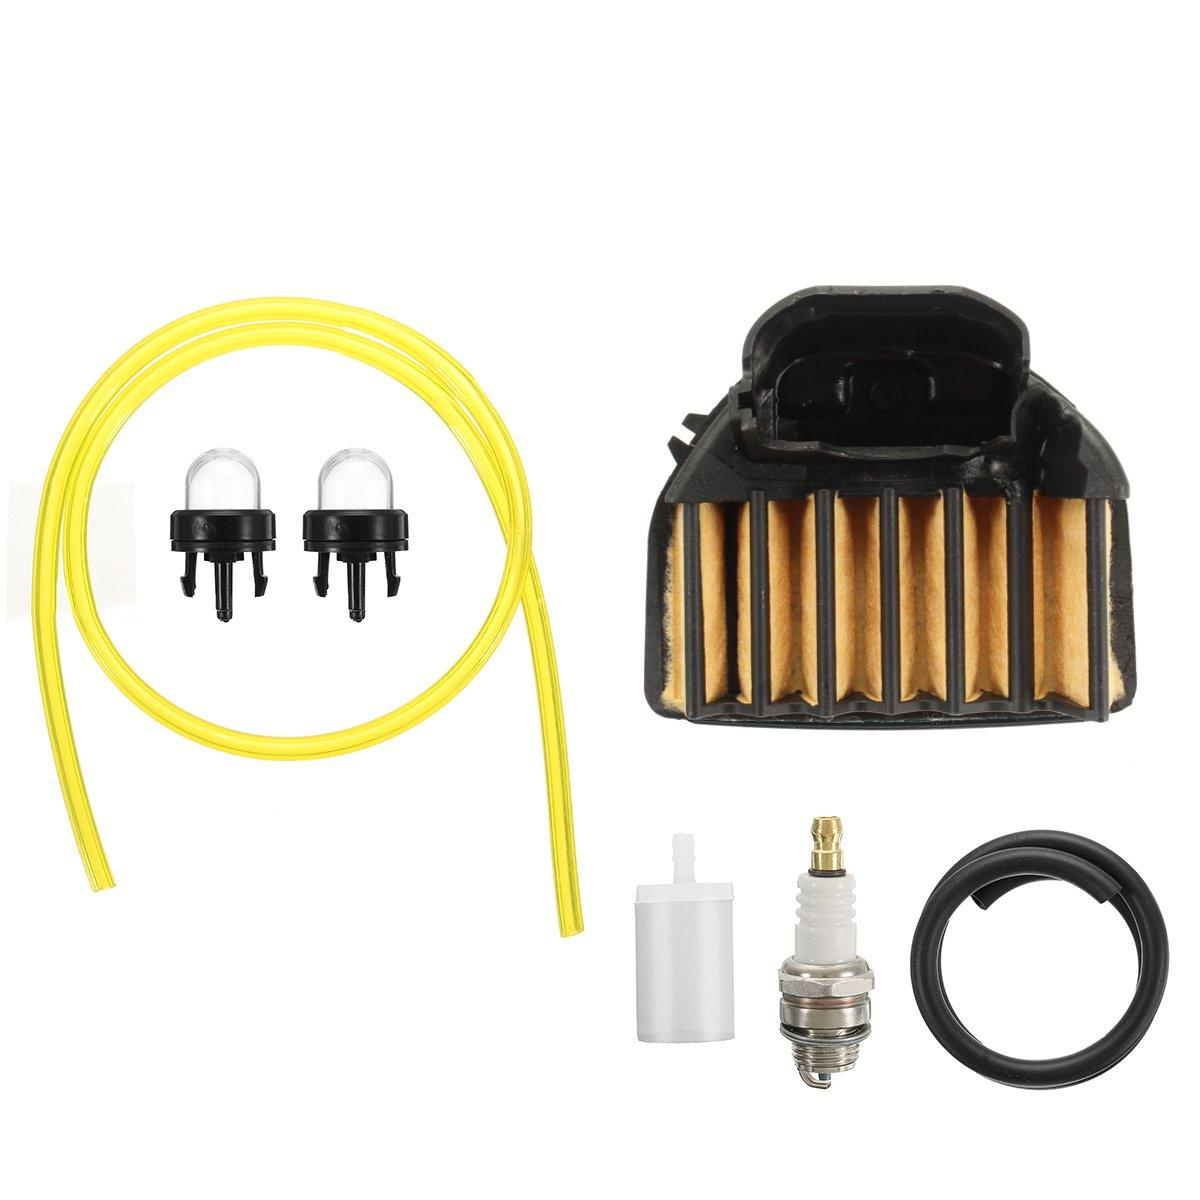 Air Fuel Filter Tune Up Service Kit for Husqvarna 455 455E 460 Rancher Chainsaw